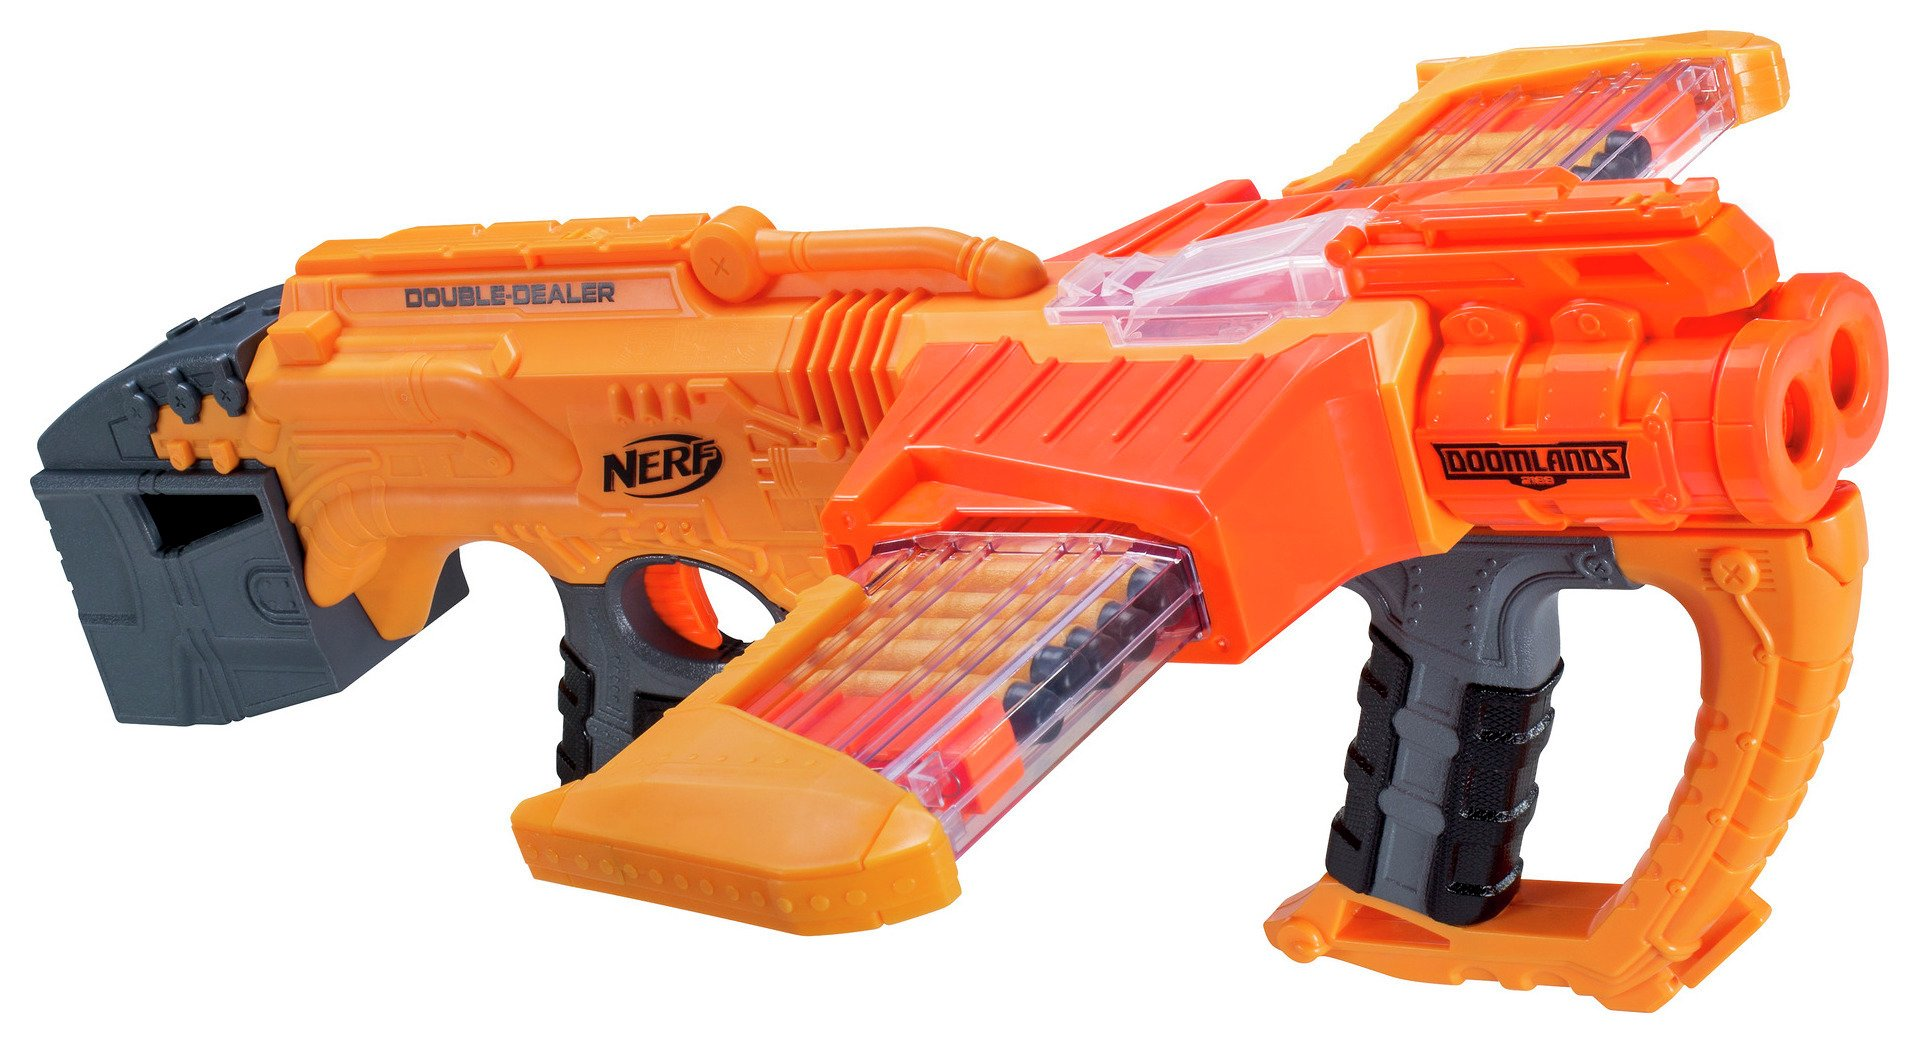 Nerf Doomlands Double Dealer Blaster.